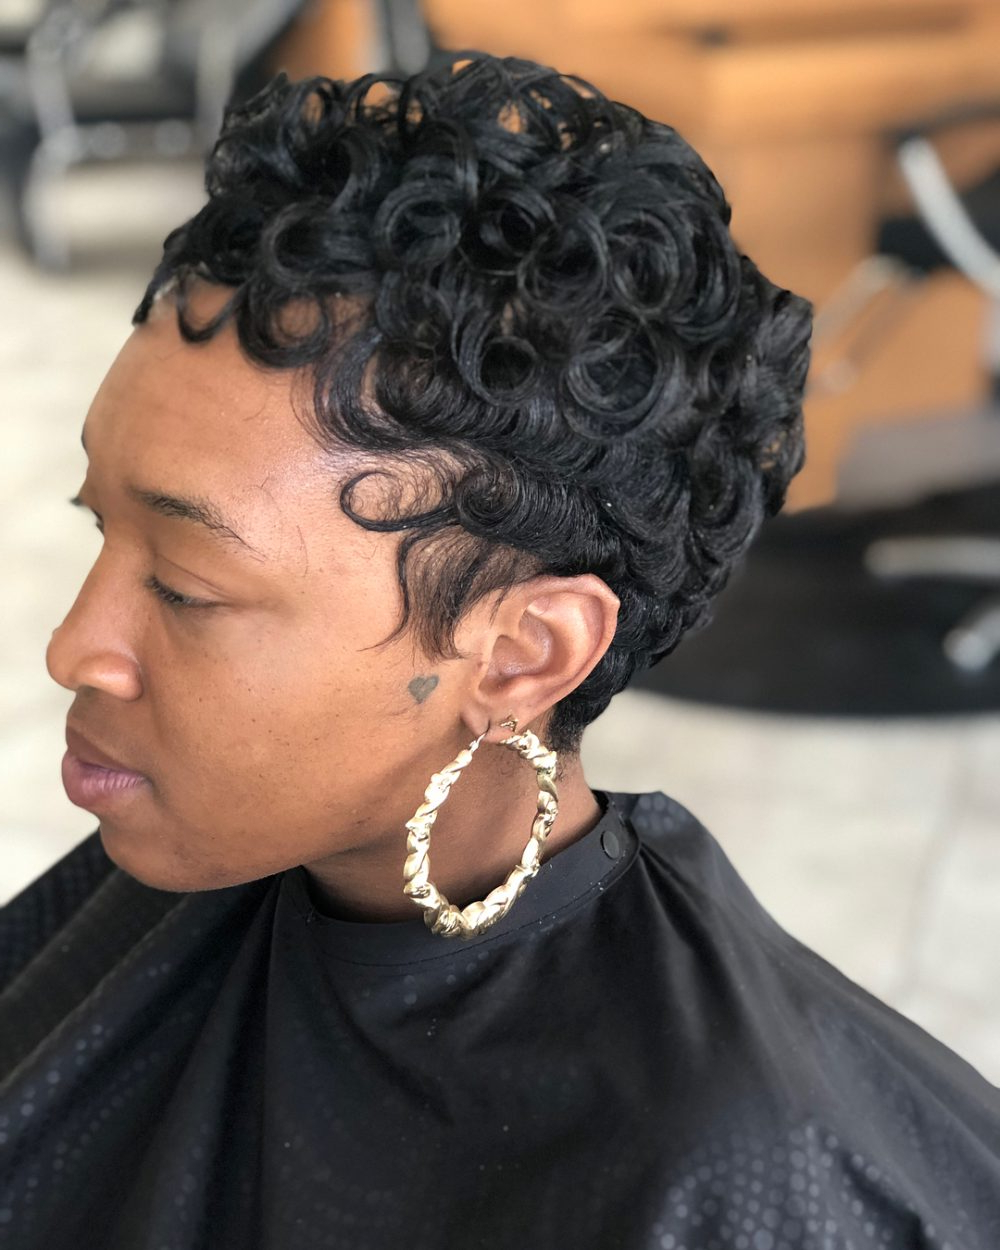 54 Easy Short Hairstyles For Black Women Throughout Current Medium Haircuts For Black Women With Oval Faces (Gallery 19 of 20)